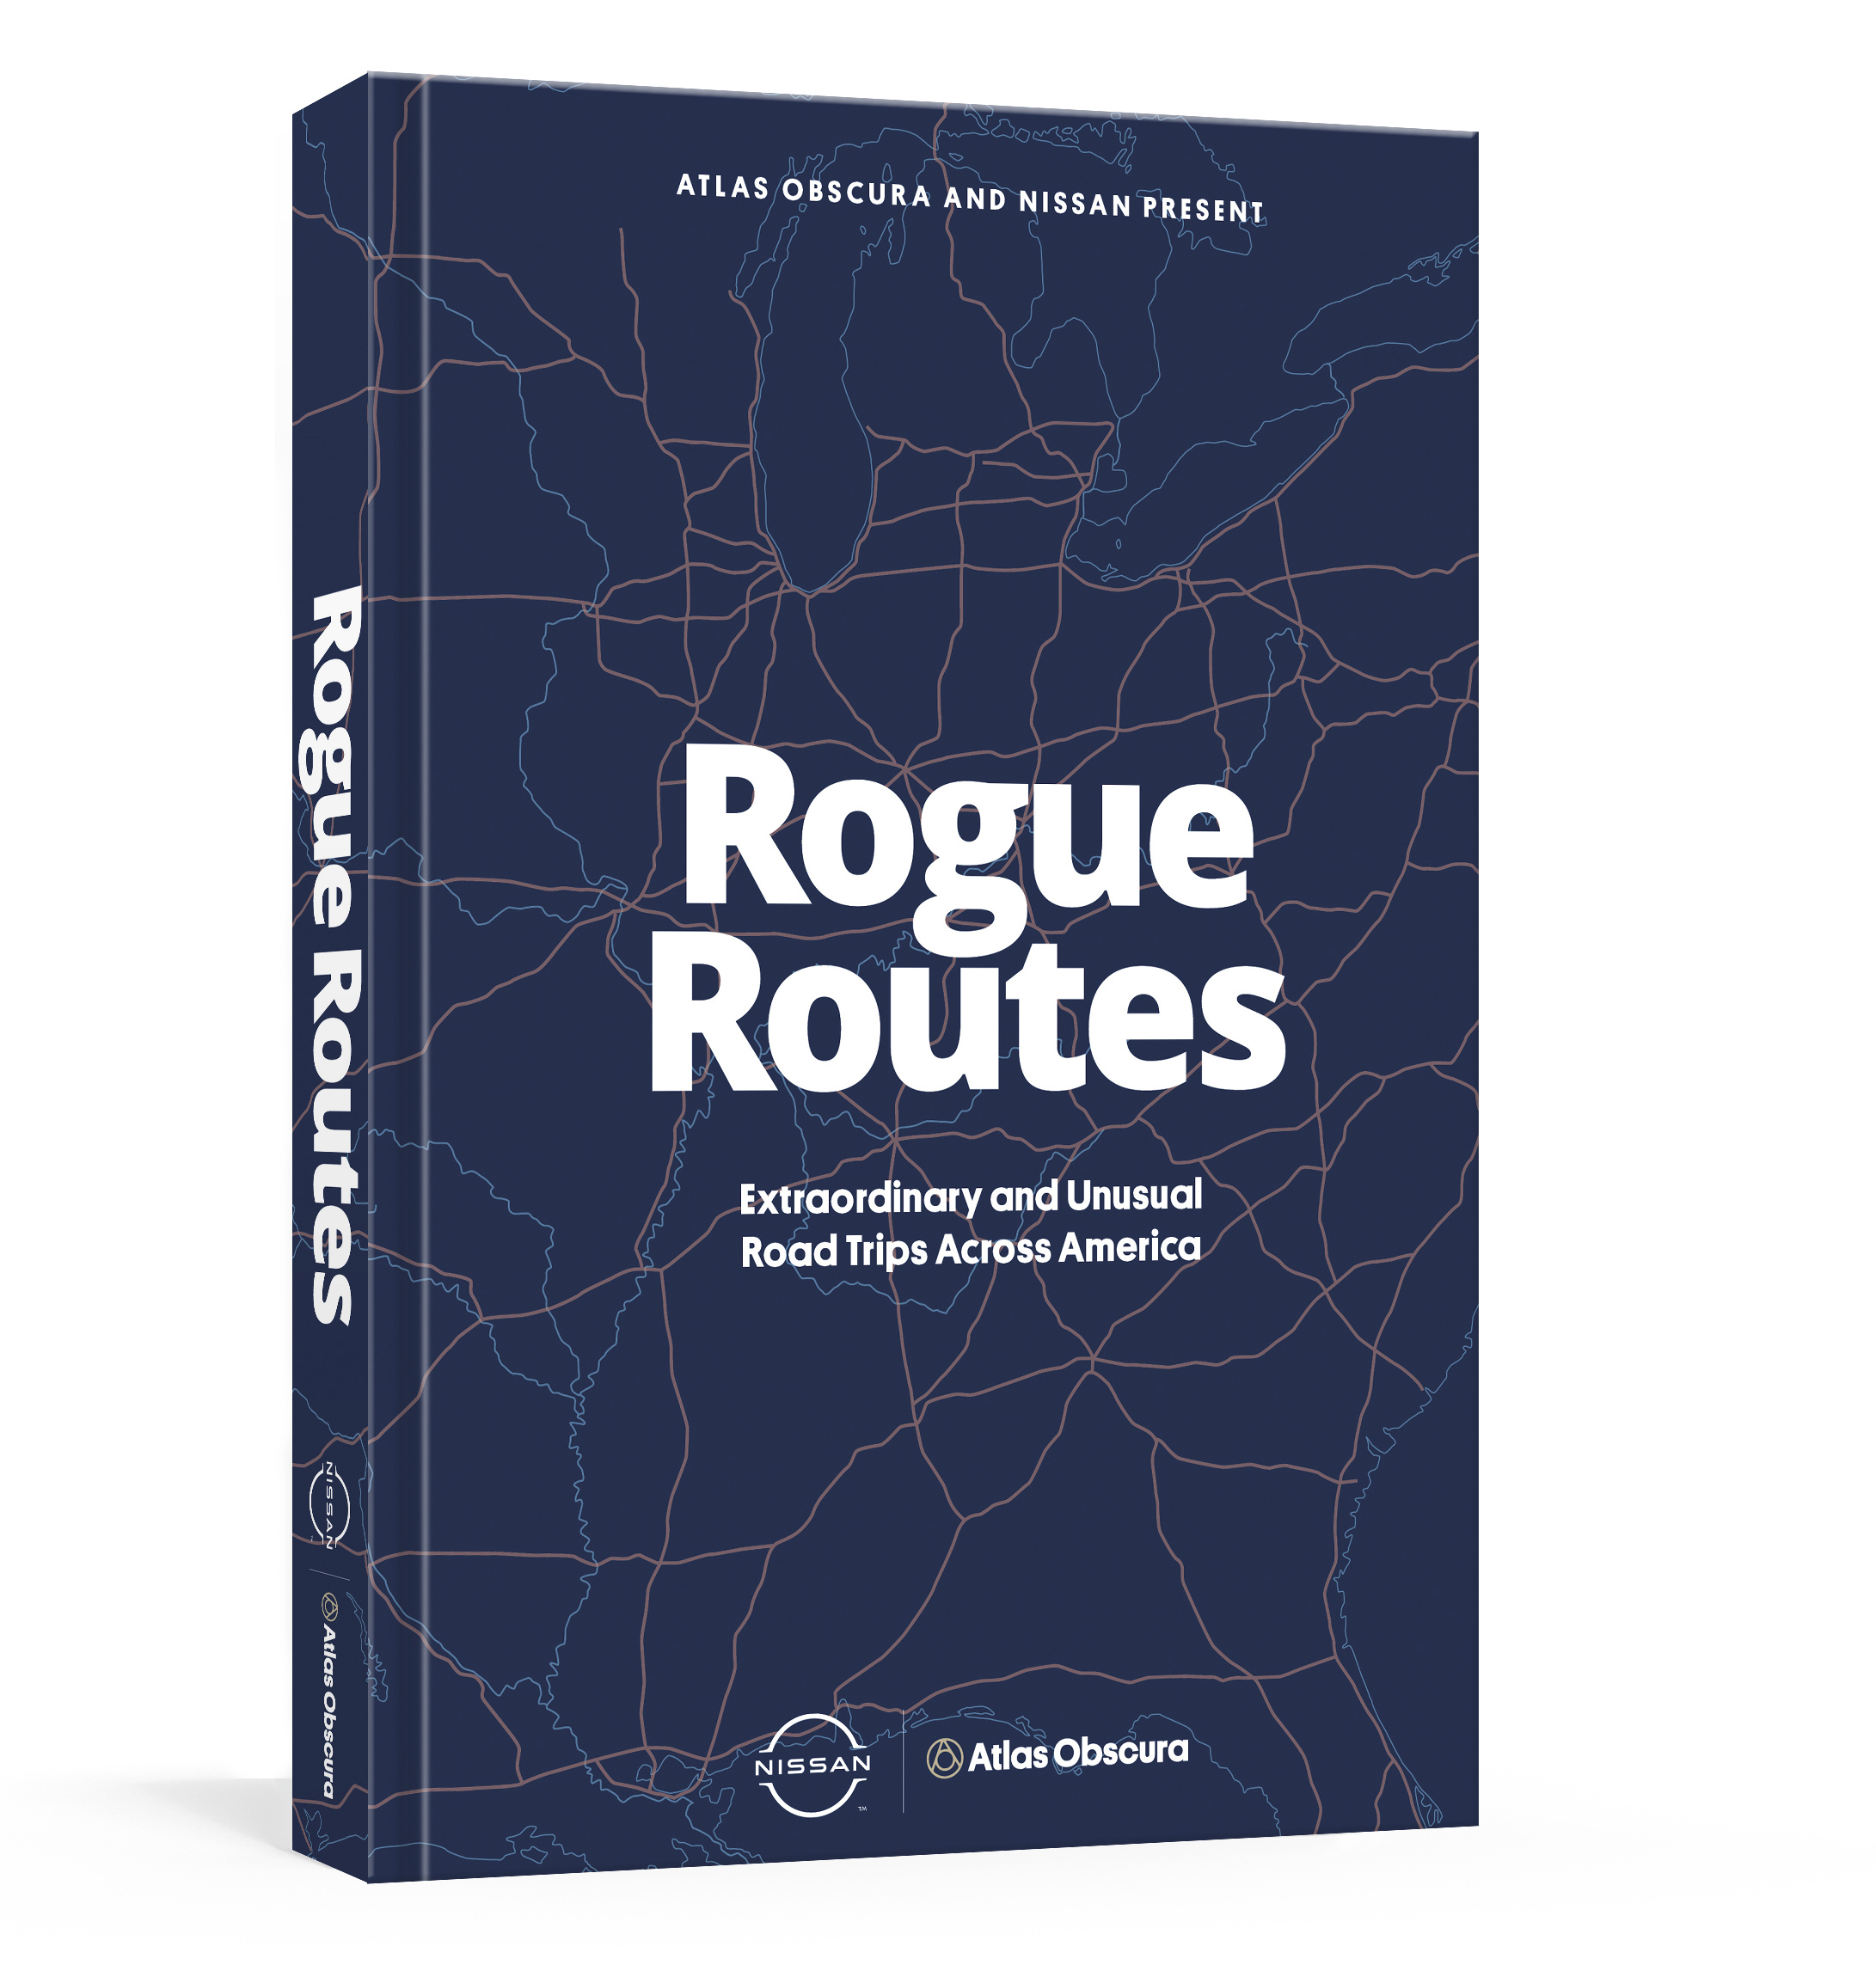 A 3D rendering of a book with a dark blue map on the cover titled Rogue Routes.